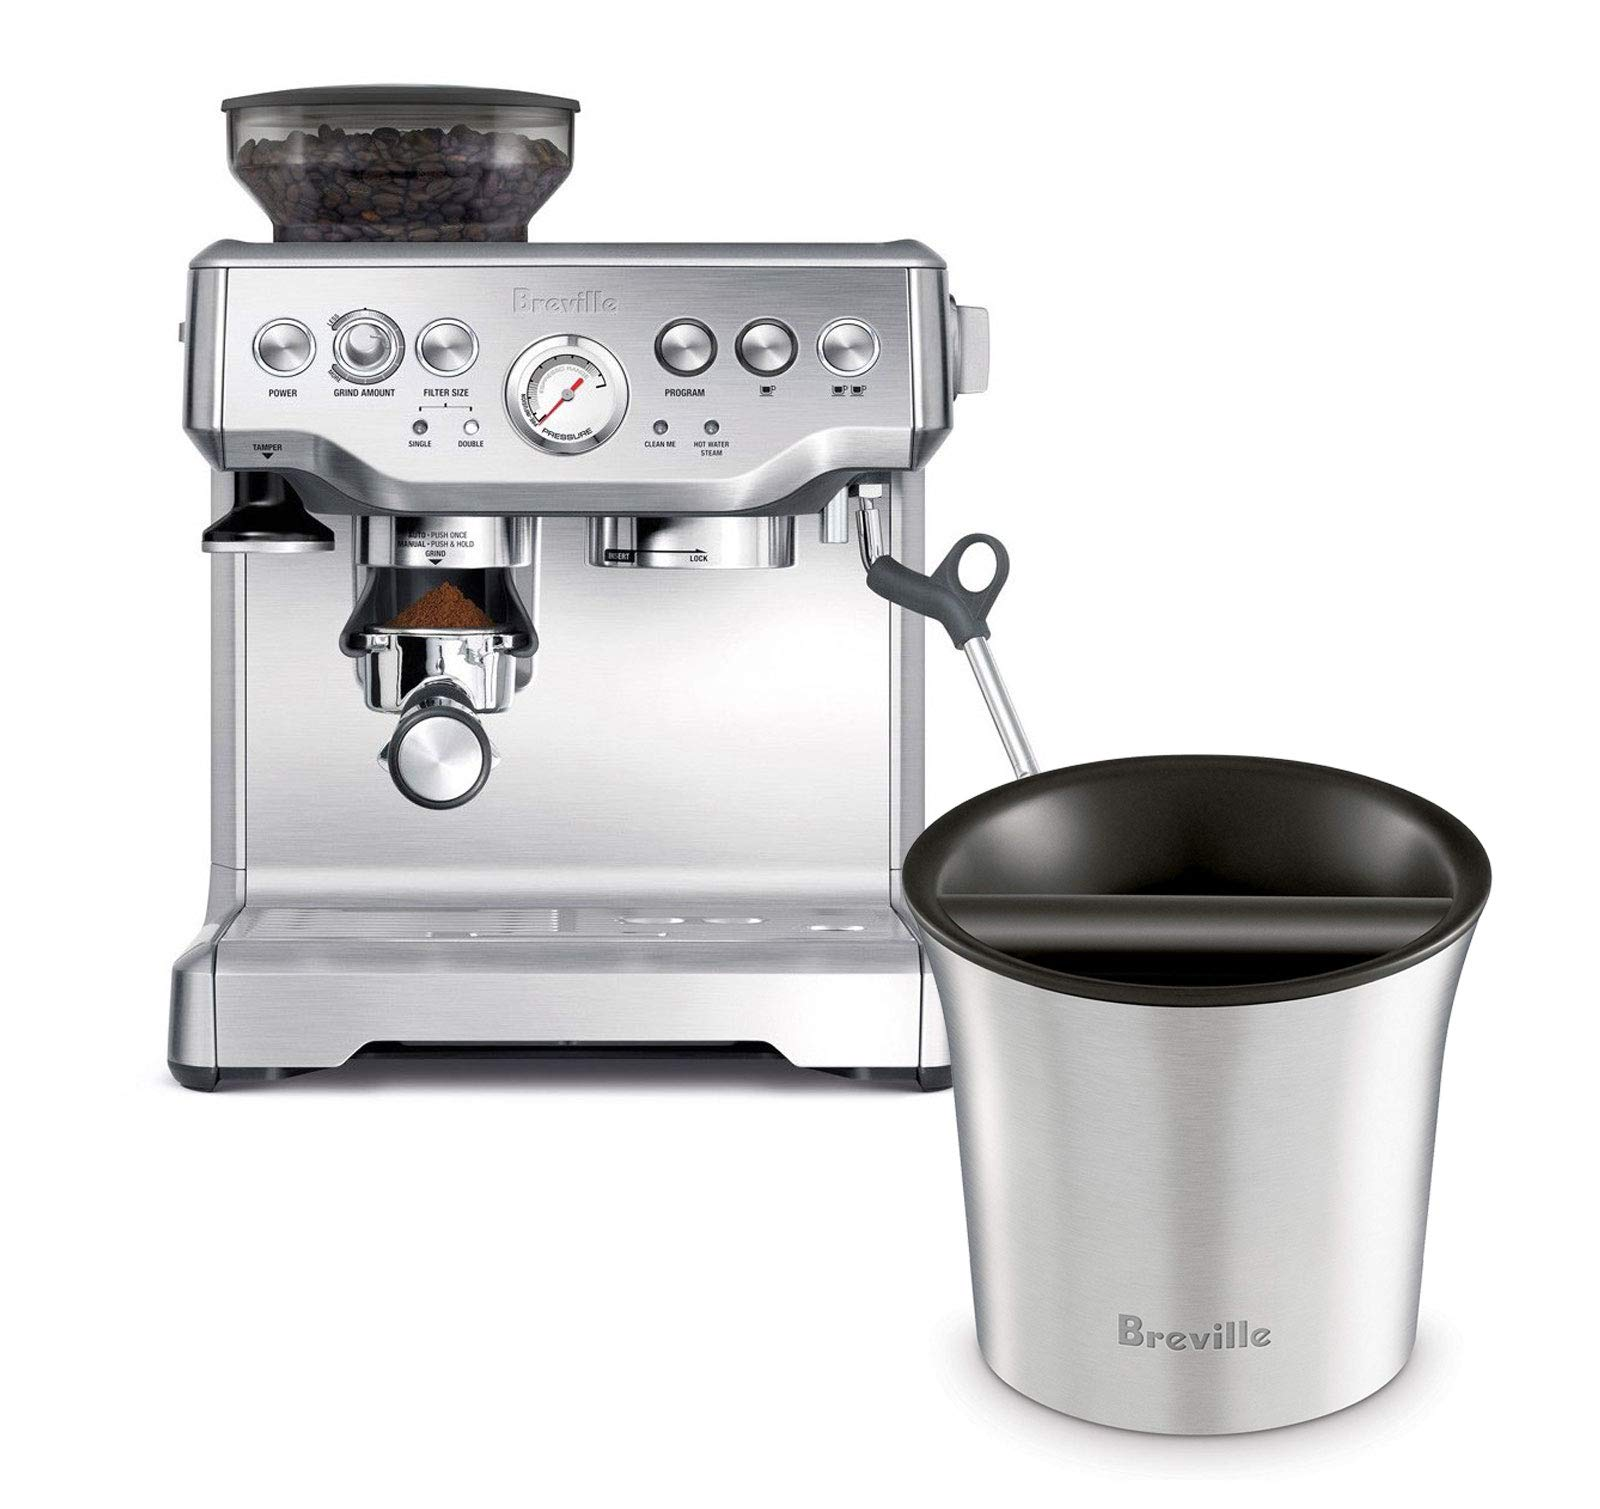 Breville BES870XL Barista Express Espresso Machine Bundle with Breville BCB100 Barista-Style Coffee Knock Box - Stainless Steel by Breville